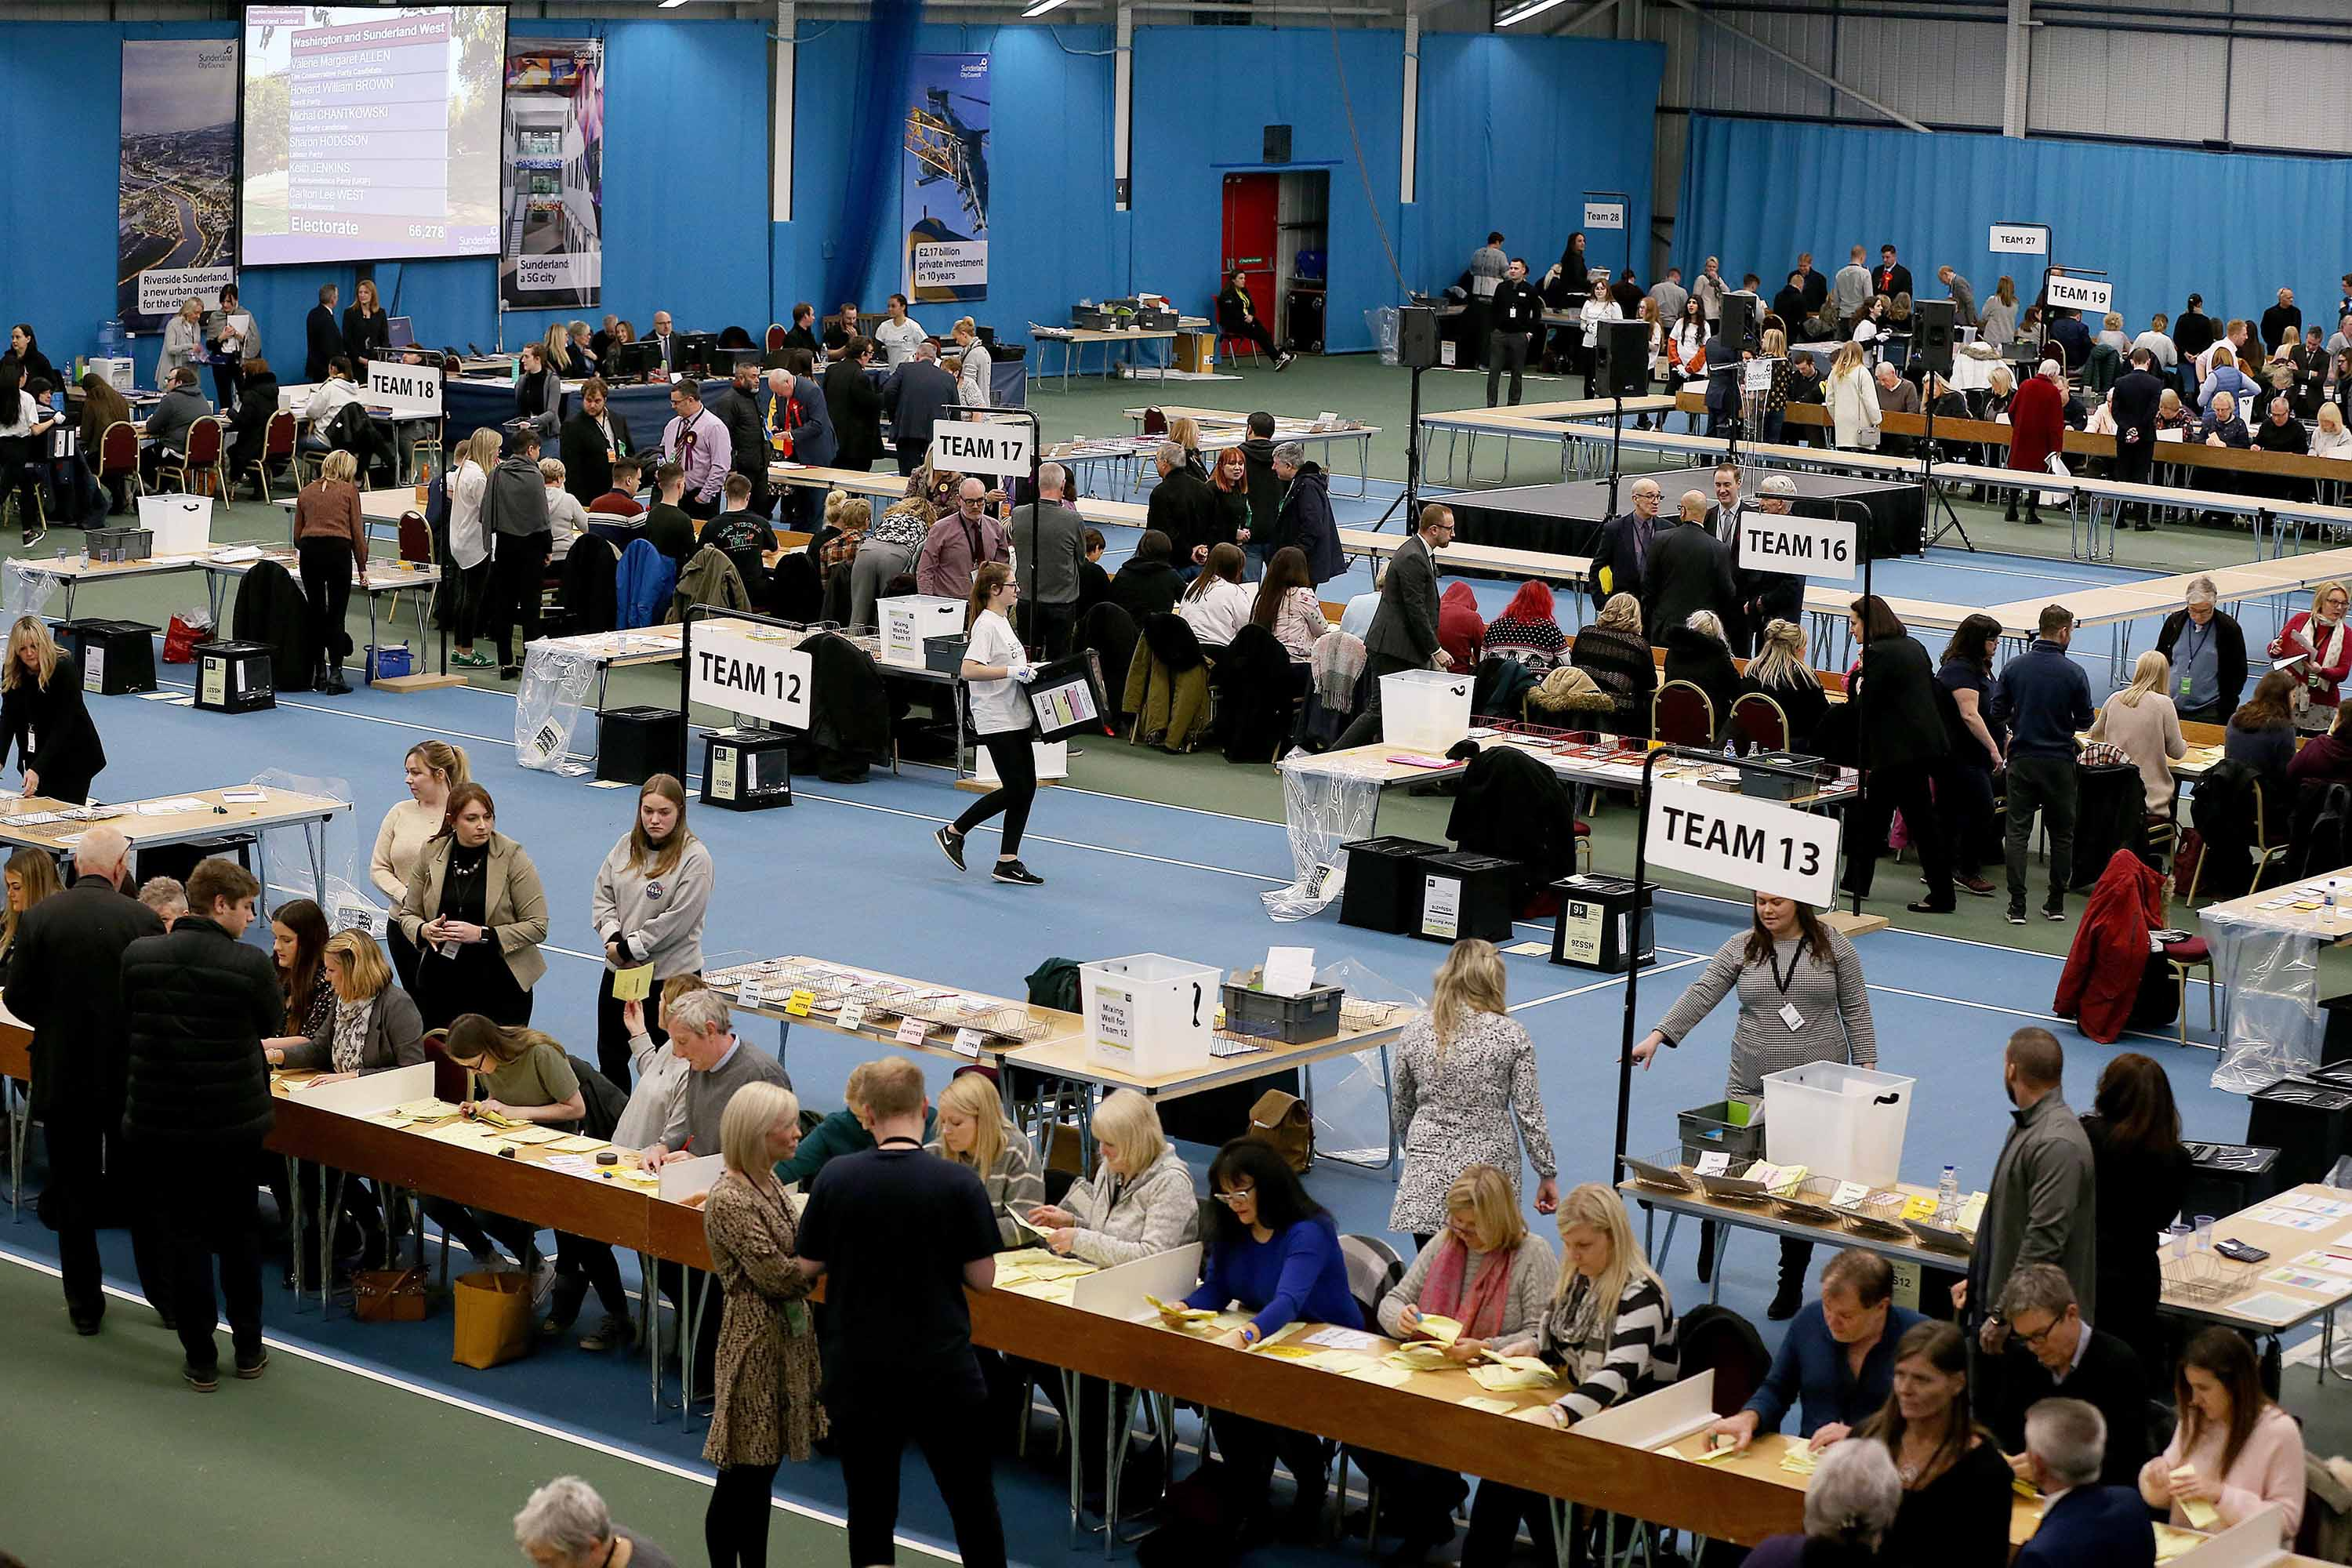 Ballots are counted at Silksworth Community Centre for the Houghton and Sunderland South constituency. Photo: Nigel Roddis/PA Images via Getty Images